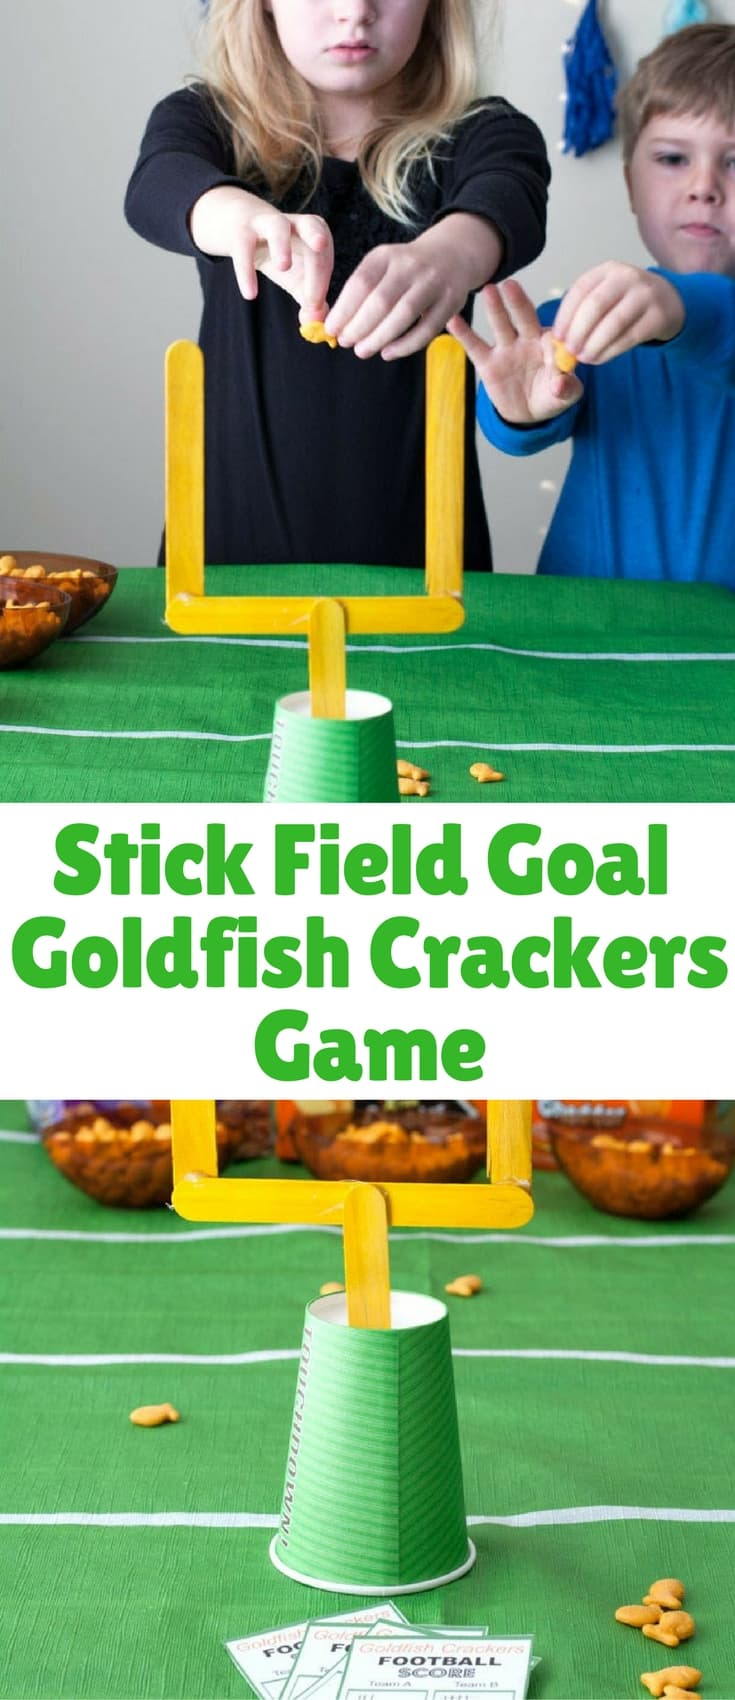 Goldfish crackers game